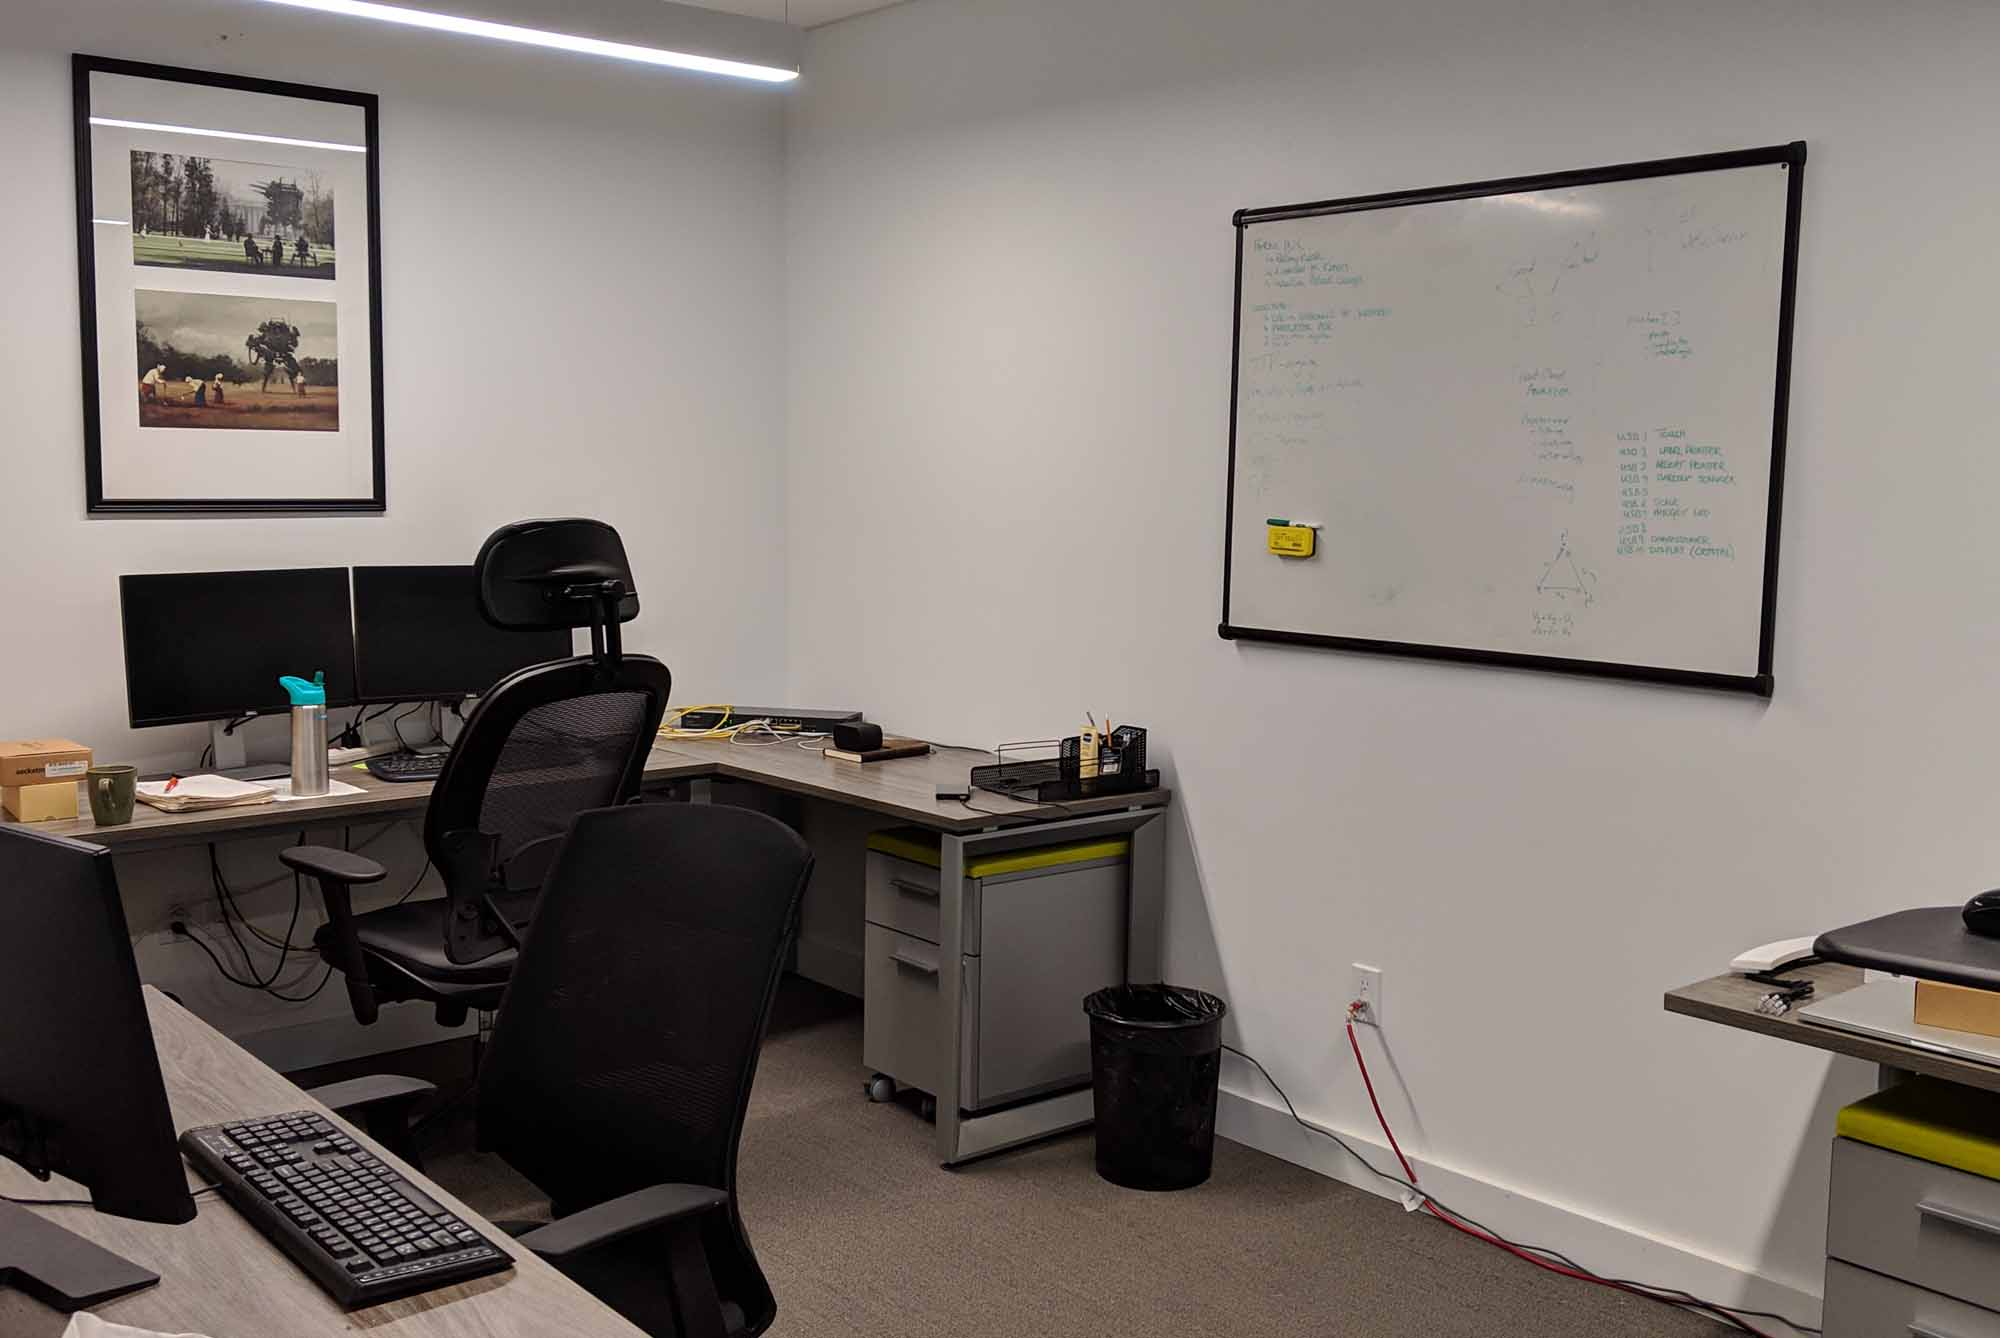 NUVO Network - Private Office with White board, desks and chairs. NUVO is a hub of innovation, creativity and entrepreneurship, and our mission is to bolt wings on people and their businesses.